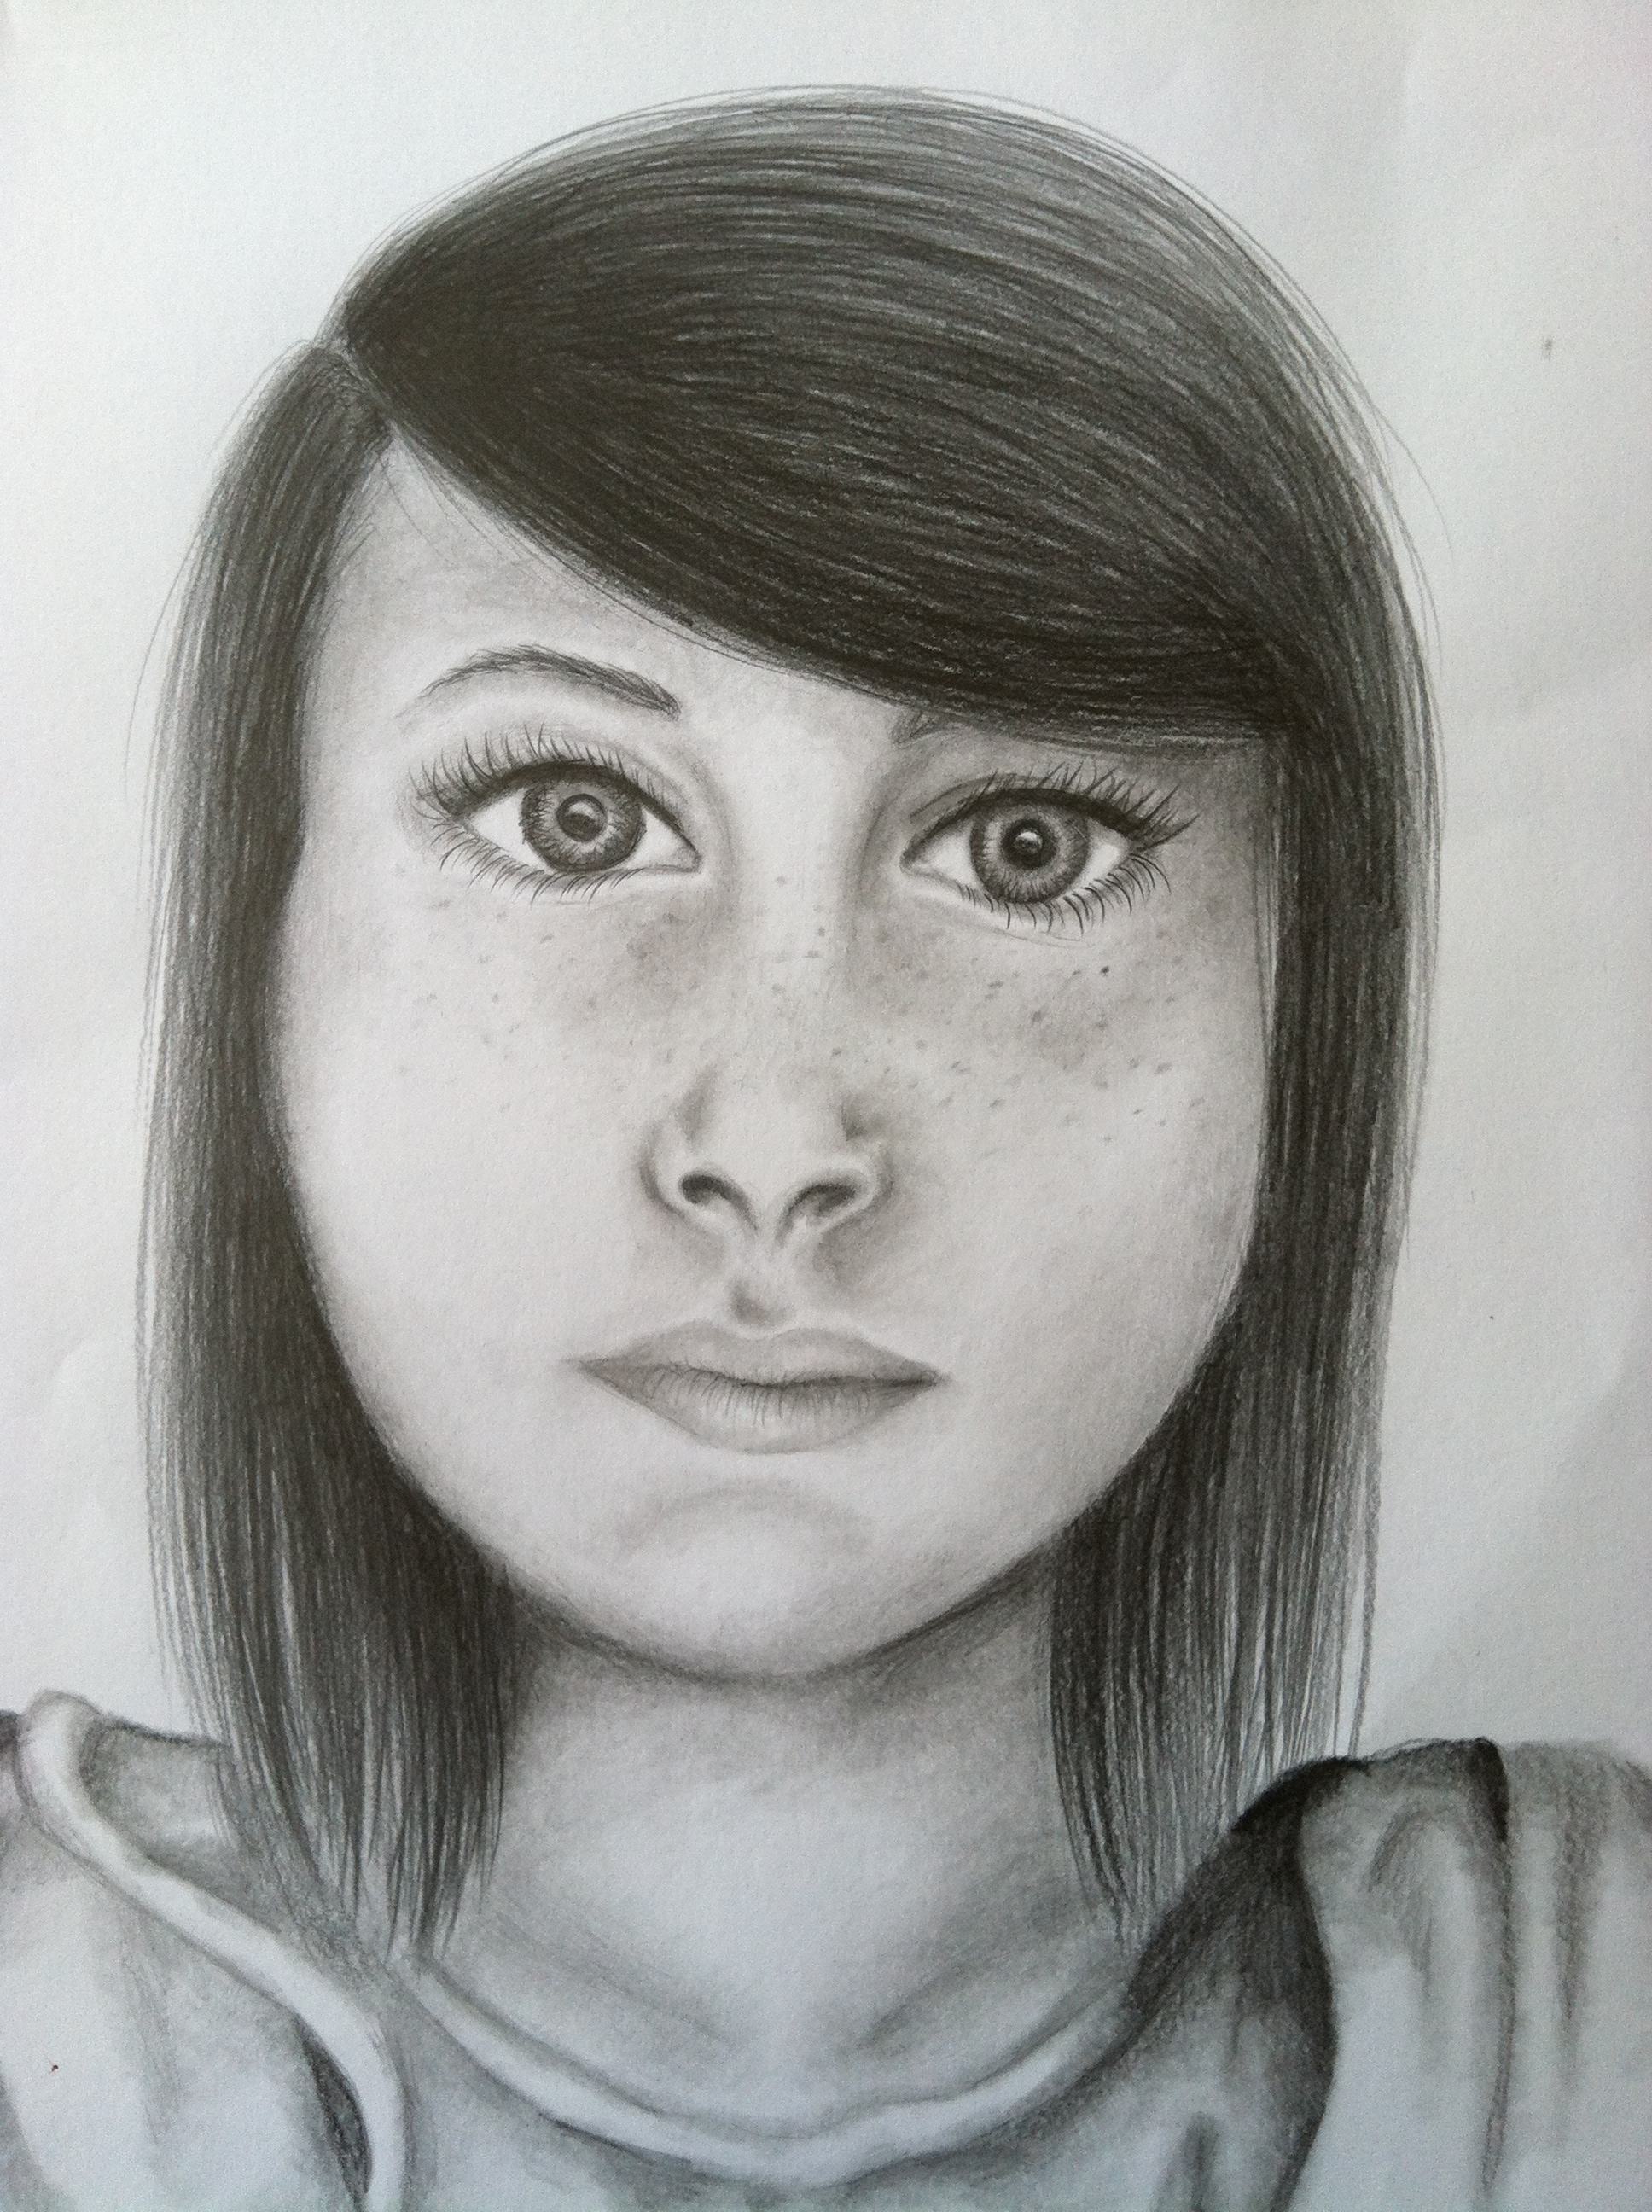 Sketchbook Assignment: Self-Portrait Drawings | CHS artroom